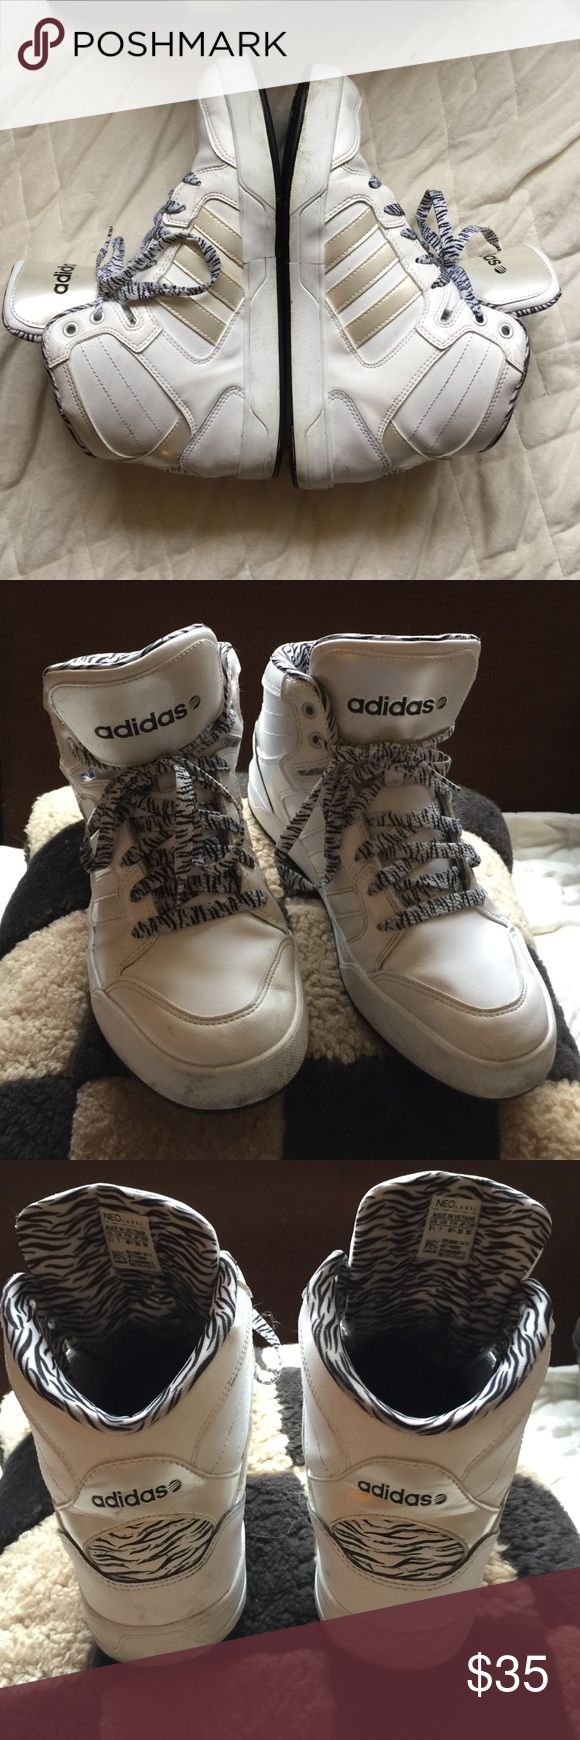 Adidias NEO Label Raleigh, Mid High Tops, zebra Adidas NEO label Raleigh mid-hightops. Fair condition. Ortholite sole pads, feel like memory foam! Size 8.5. Adidas Shoes Sneakers